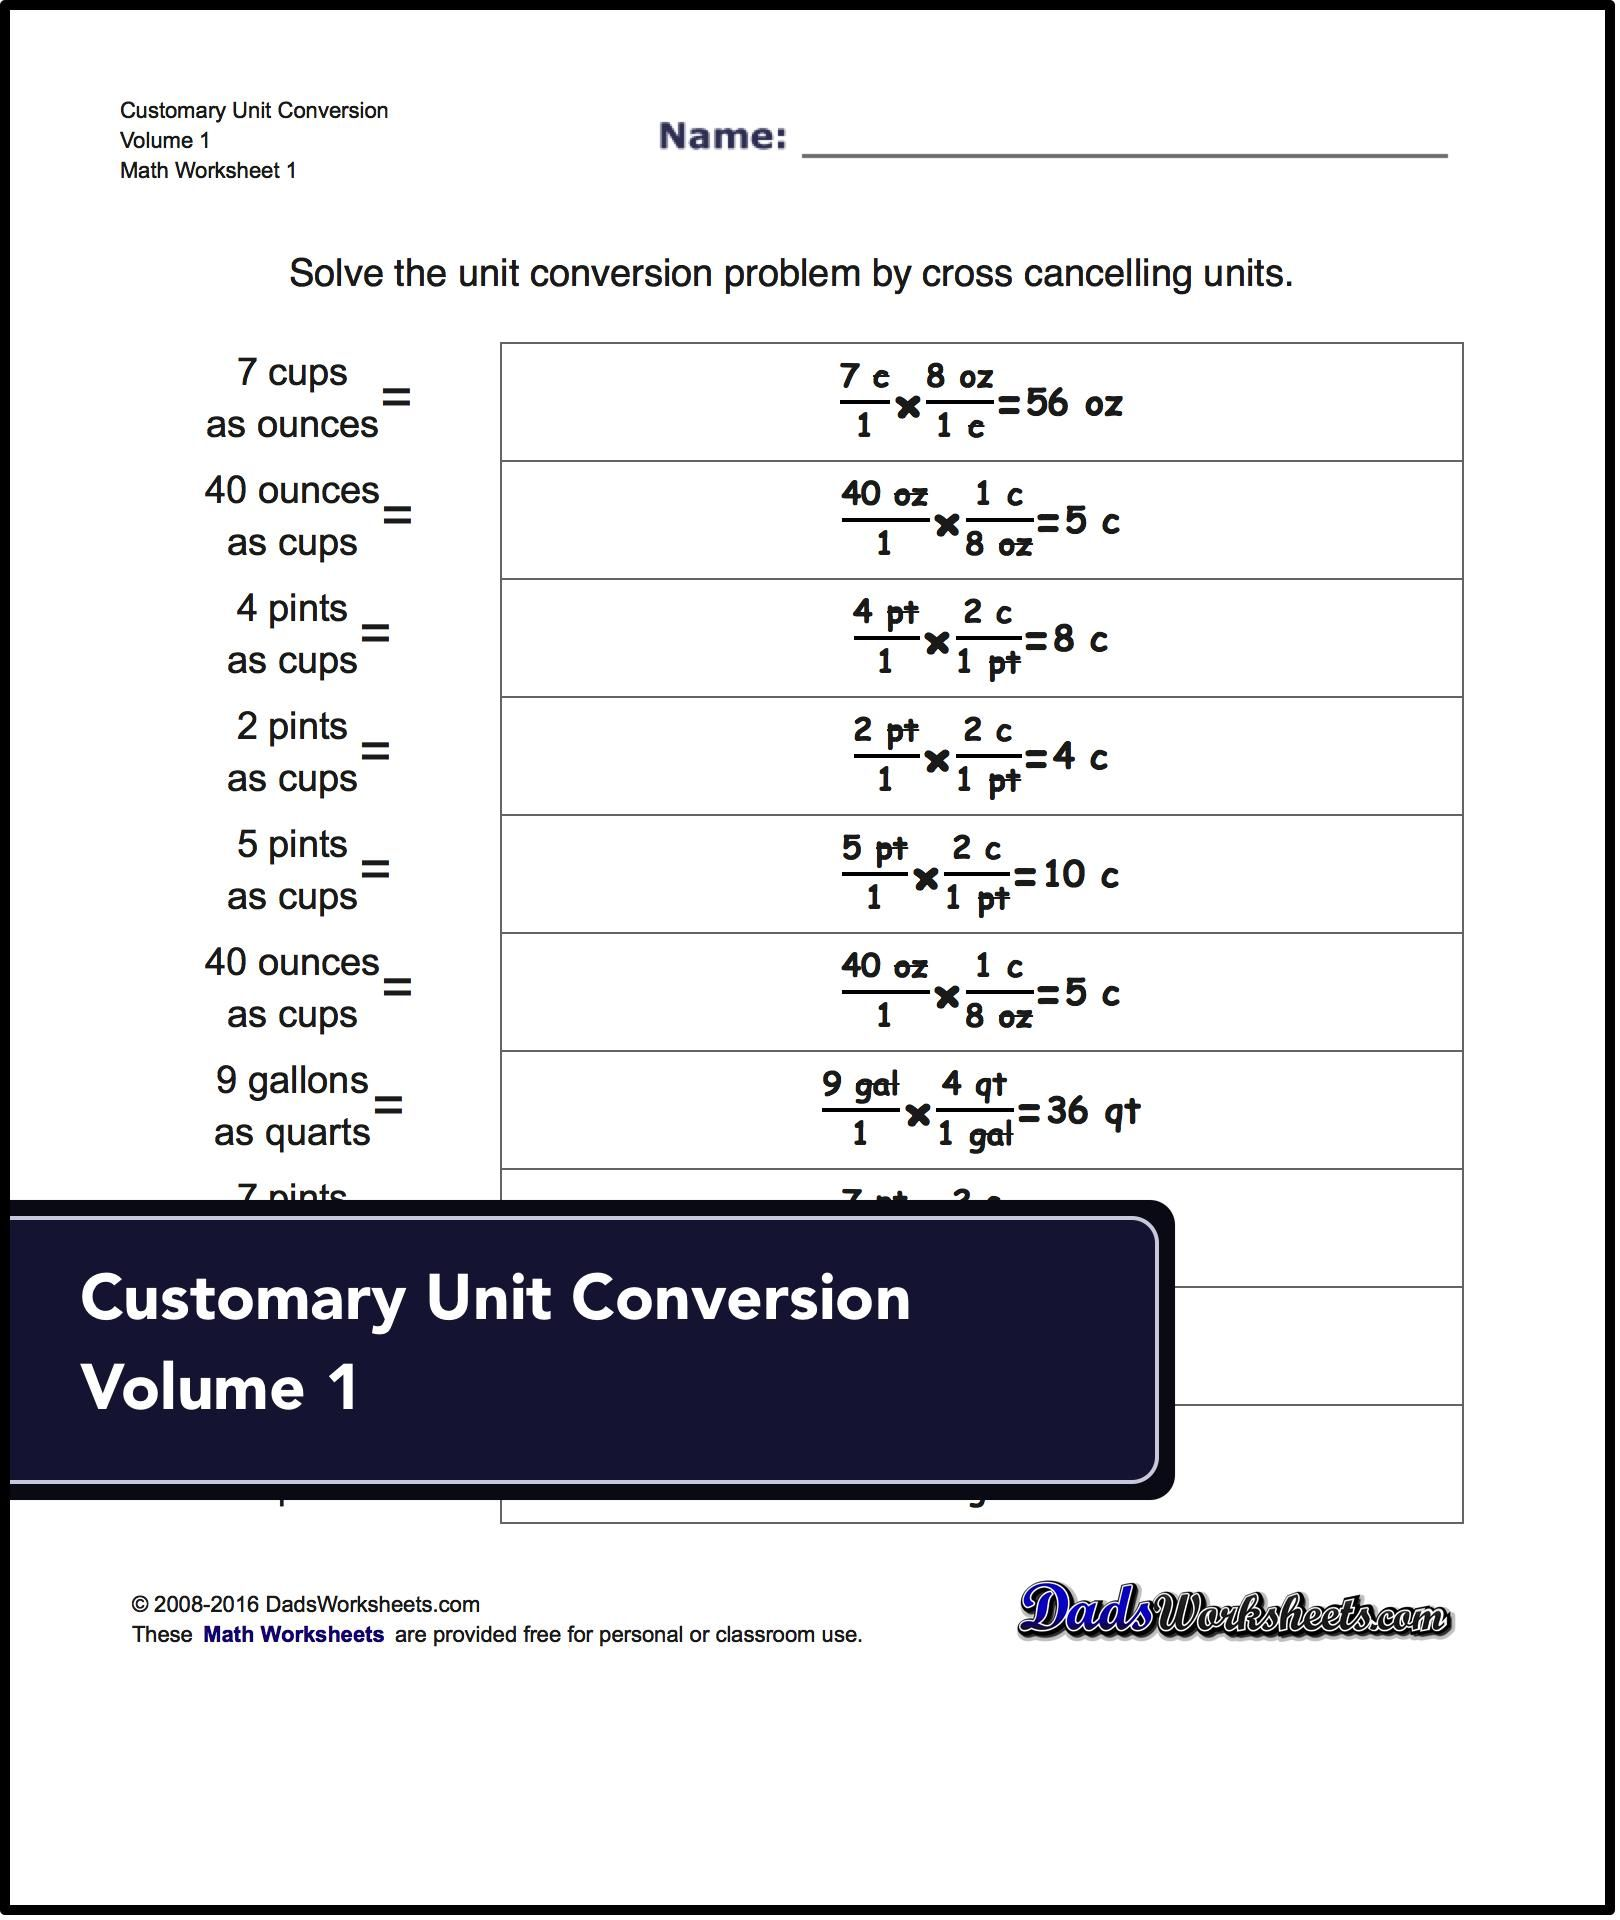 Unit Conversion Worksheets For Converting Customary Volume